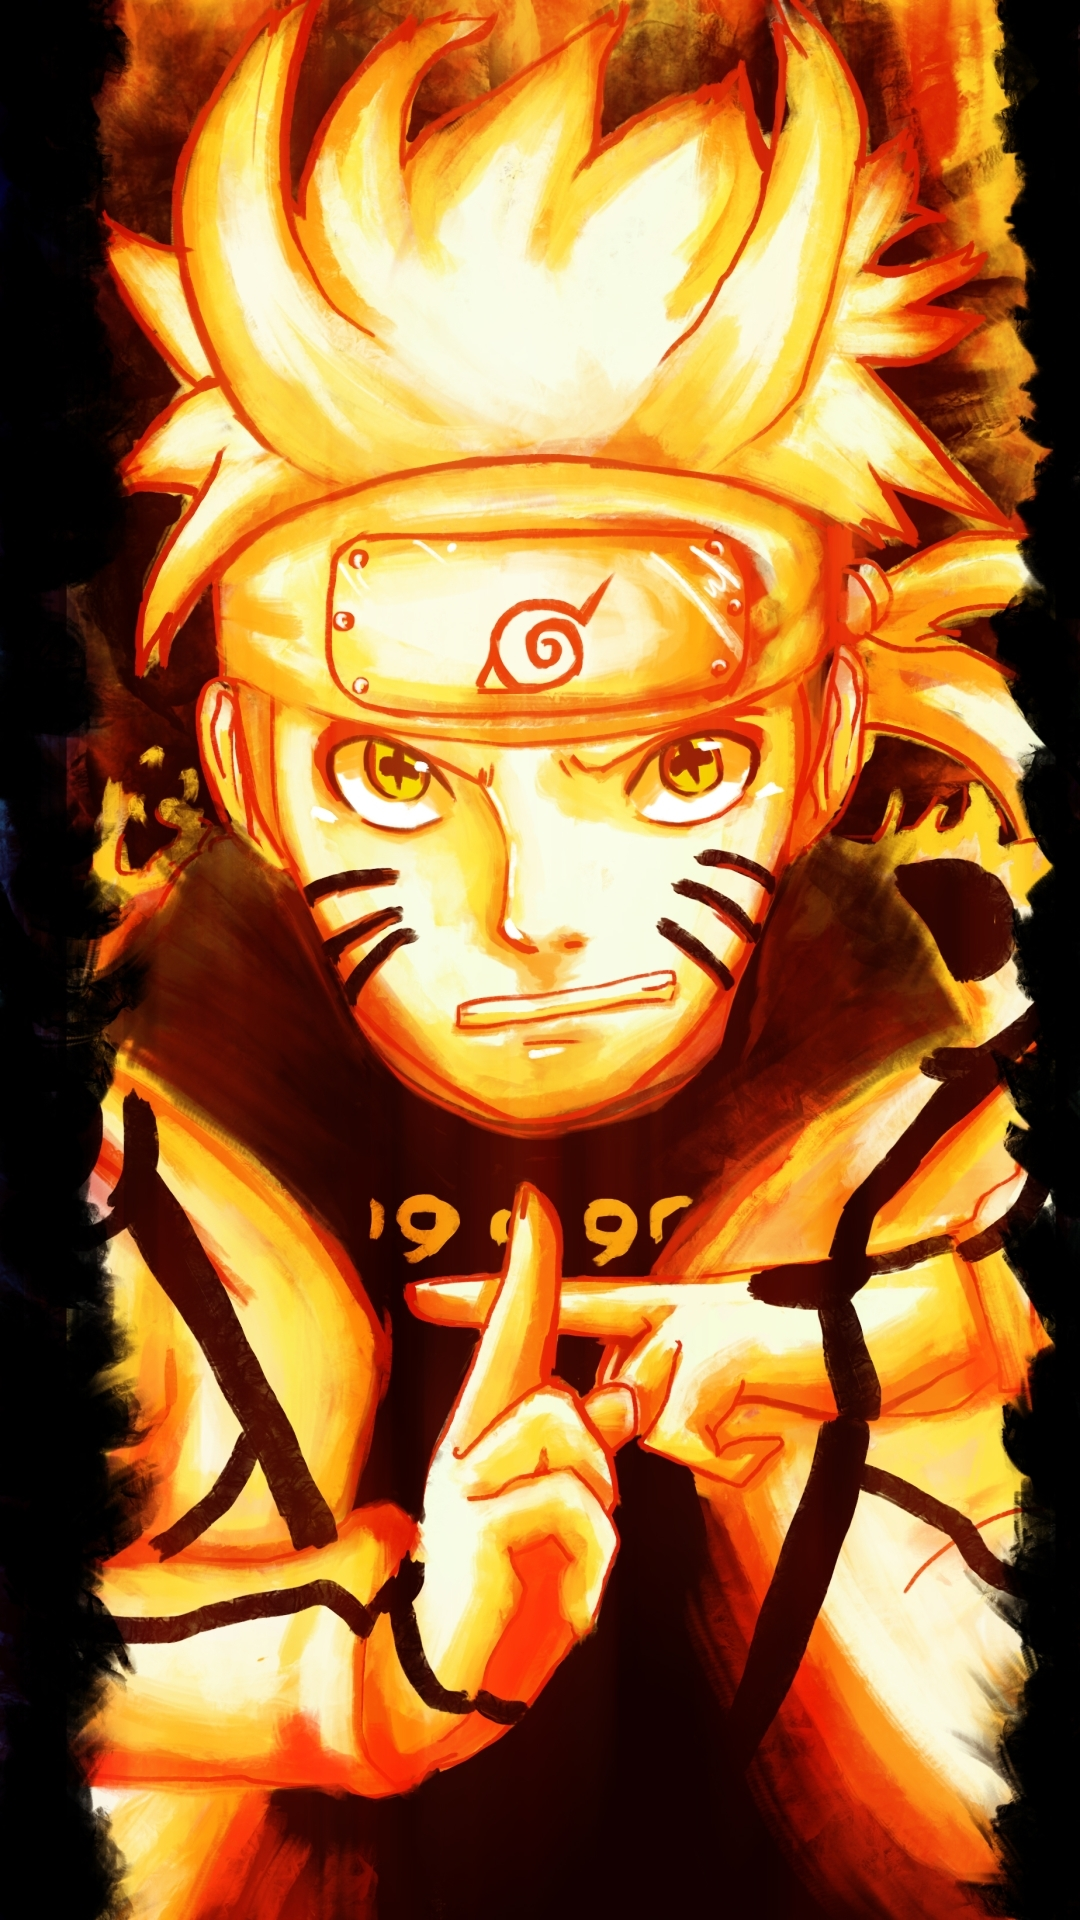 135 naruto (1080x1920) wallpapers - mobile abyss